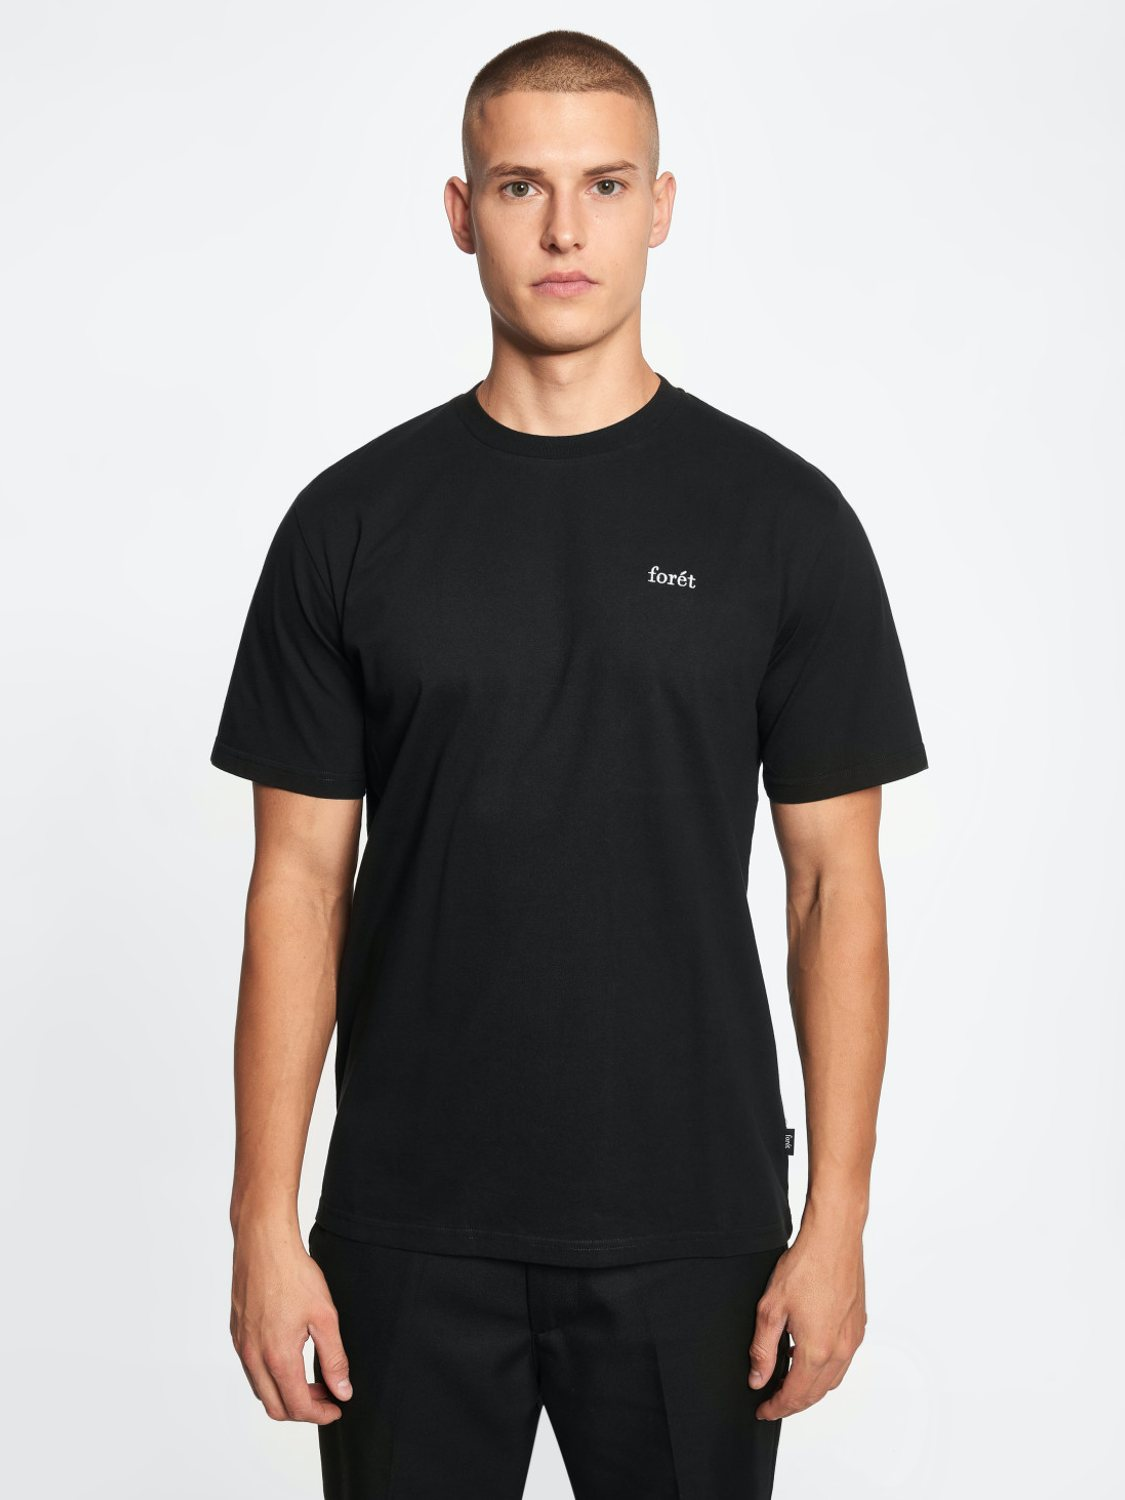 FORÉT - Air T-Shirt black | Gate36 Hobro